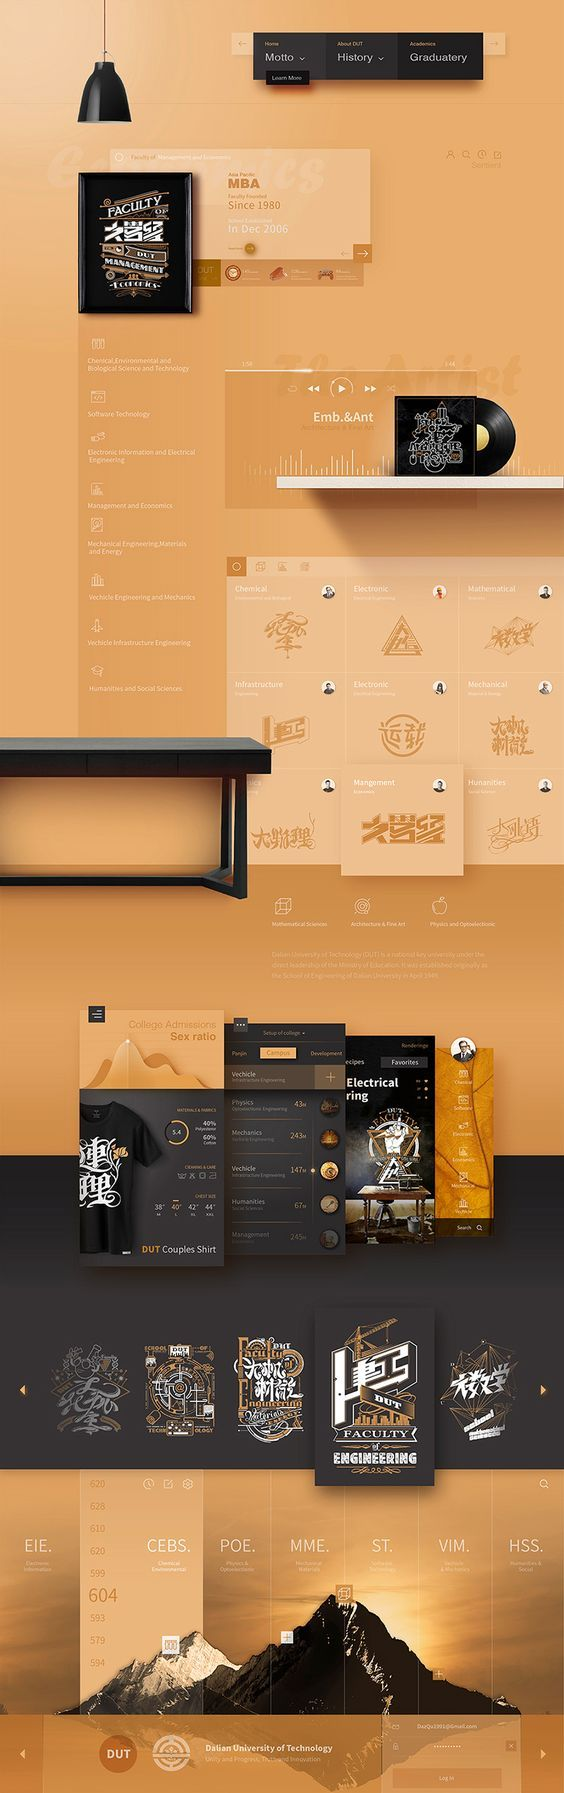 e-commerce website idea #layout #concept #inspiration